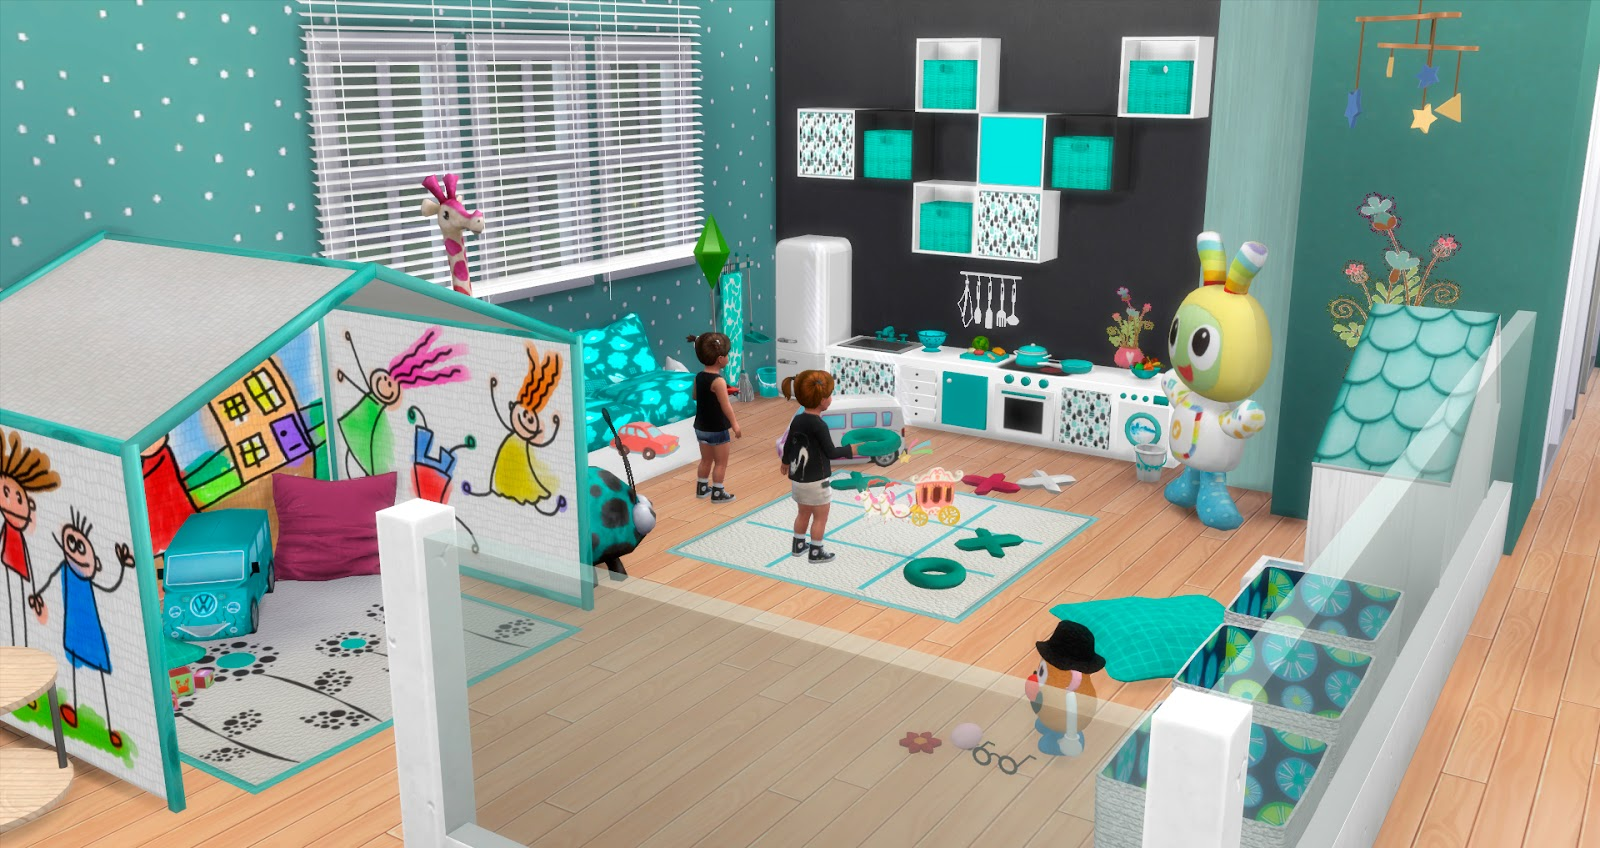 My sims 4 blog toddler playroom by pqsim4 - Cuartos de juego ...